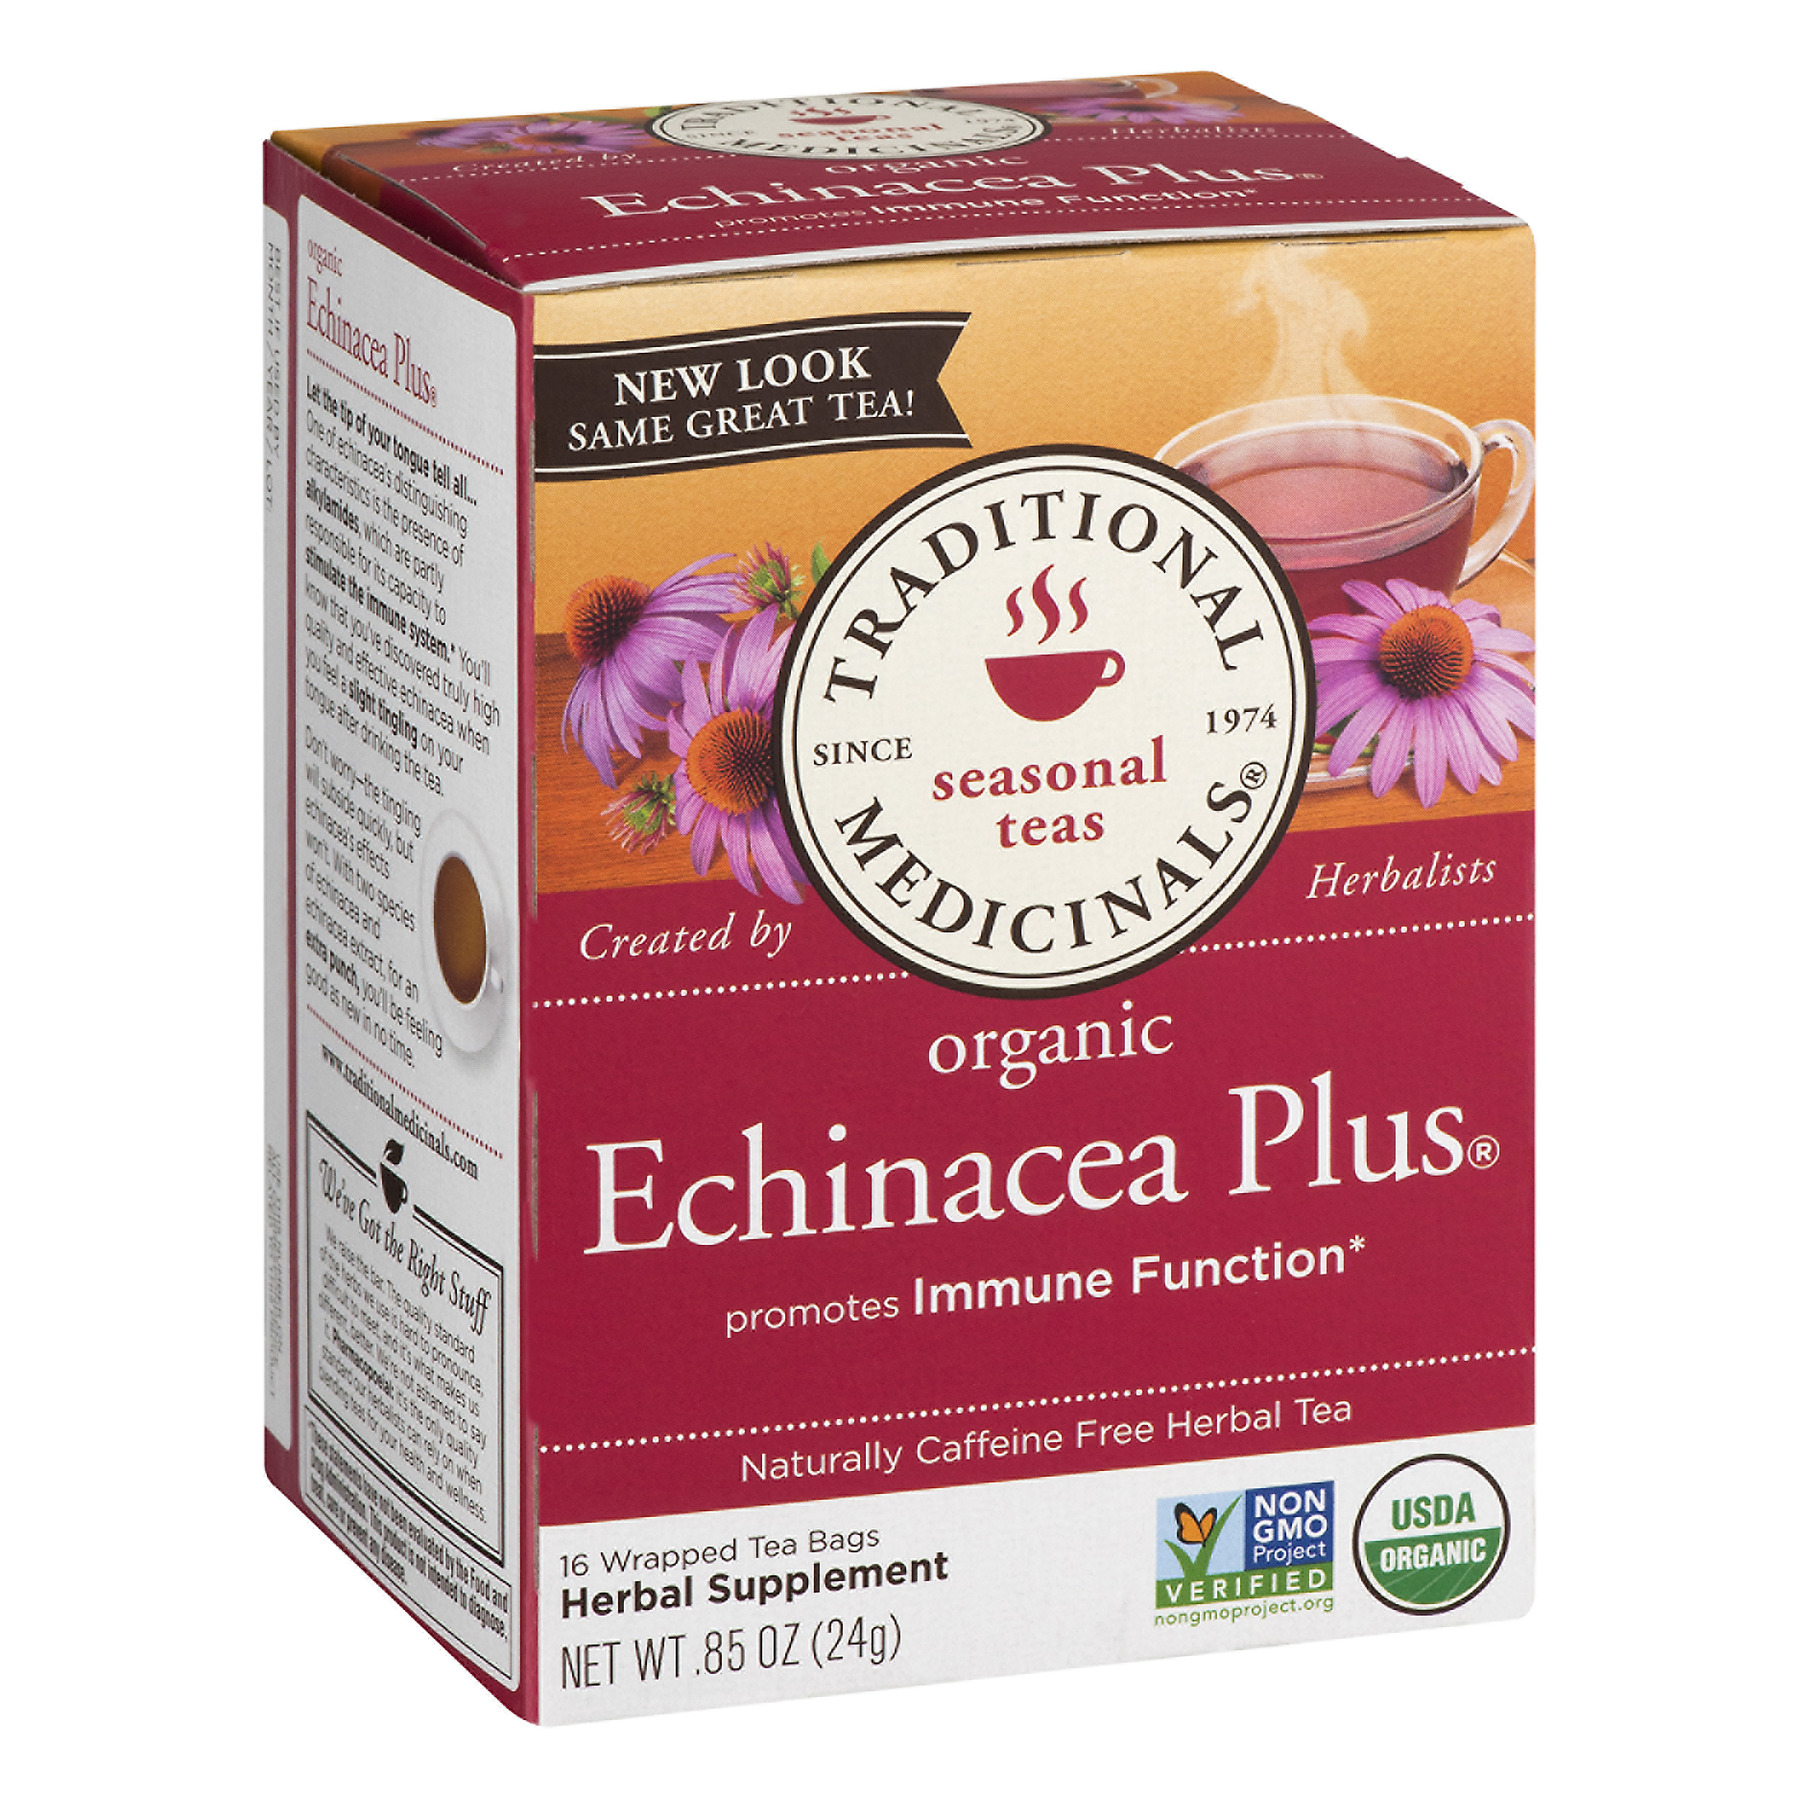 TRADITIONAL MEDICINAL ECHINACEA PLUS